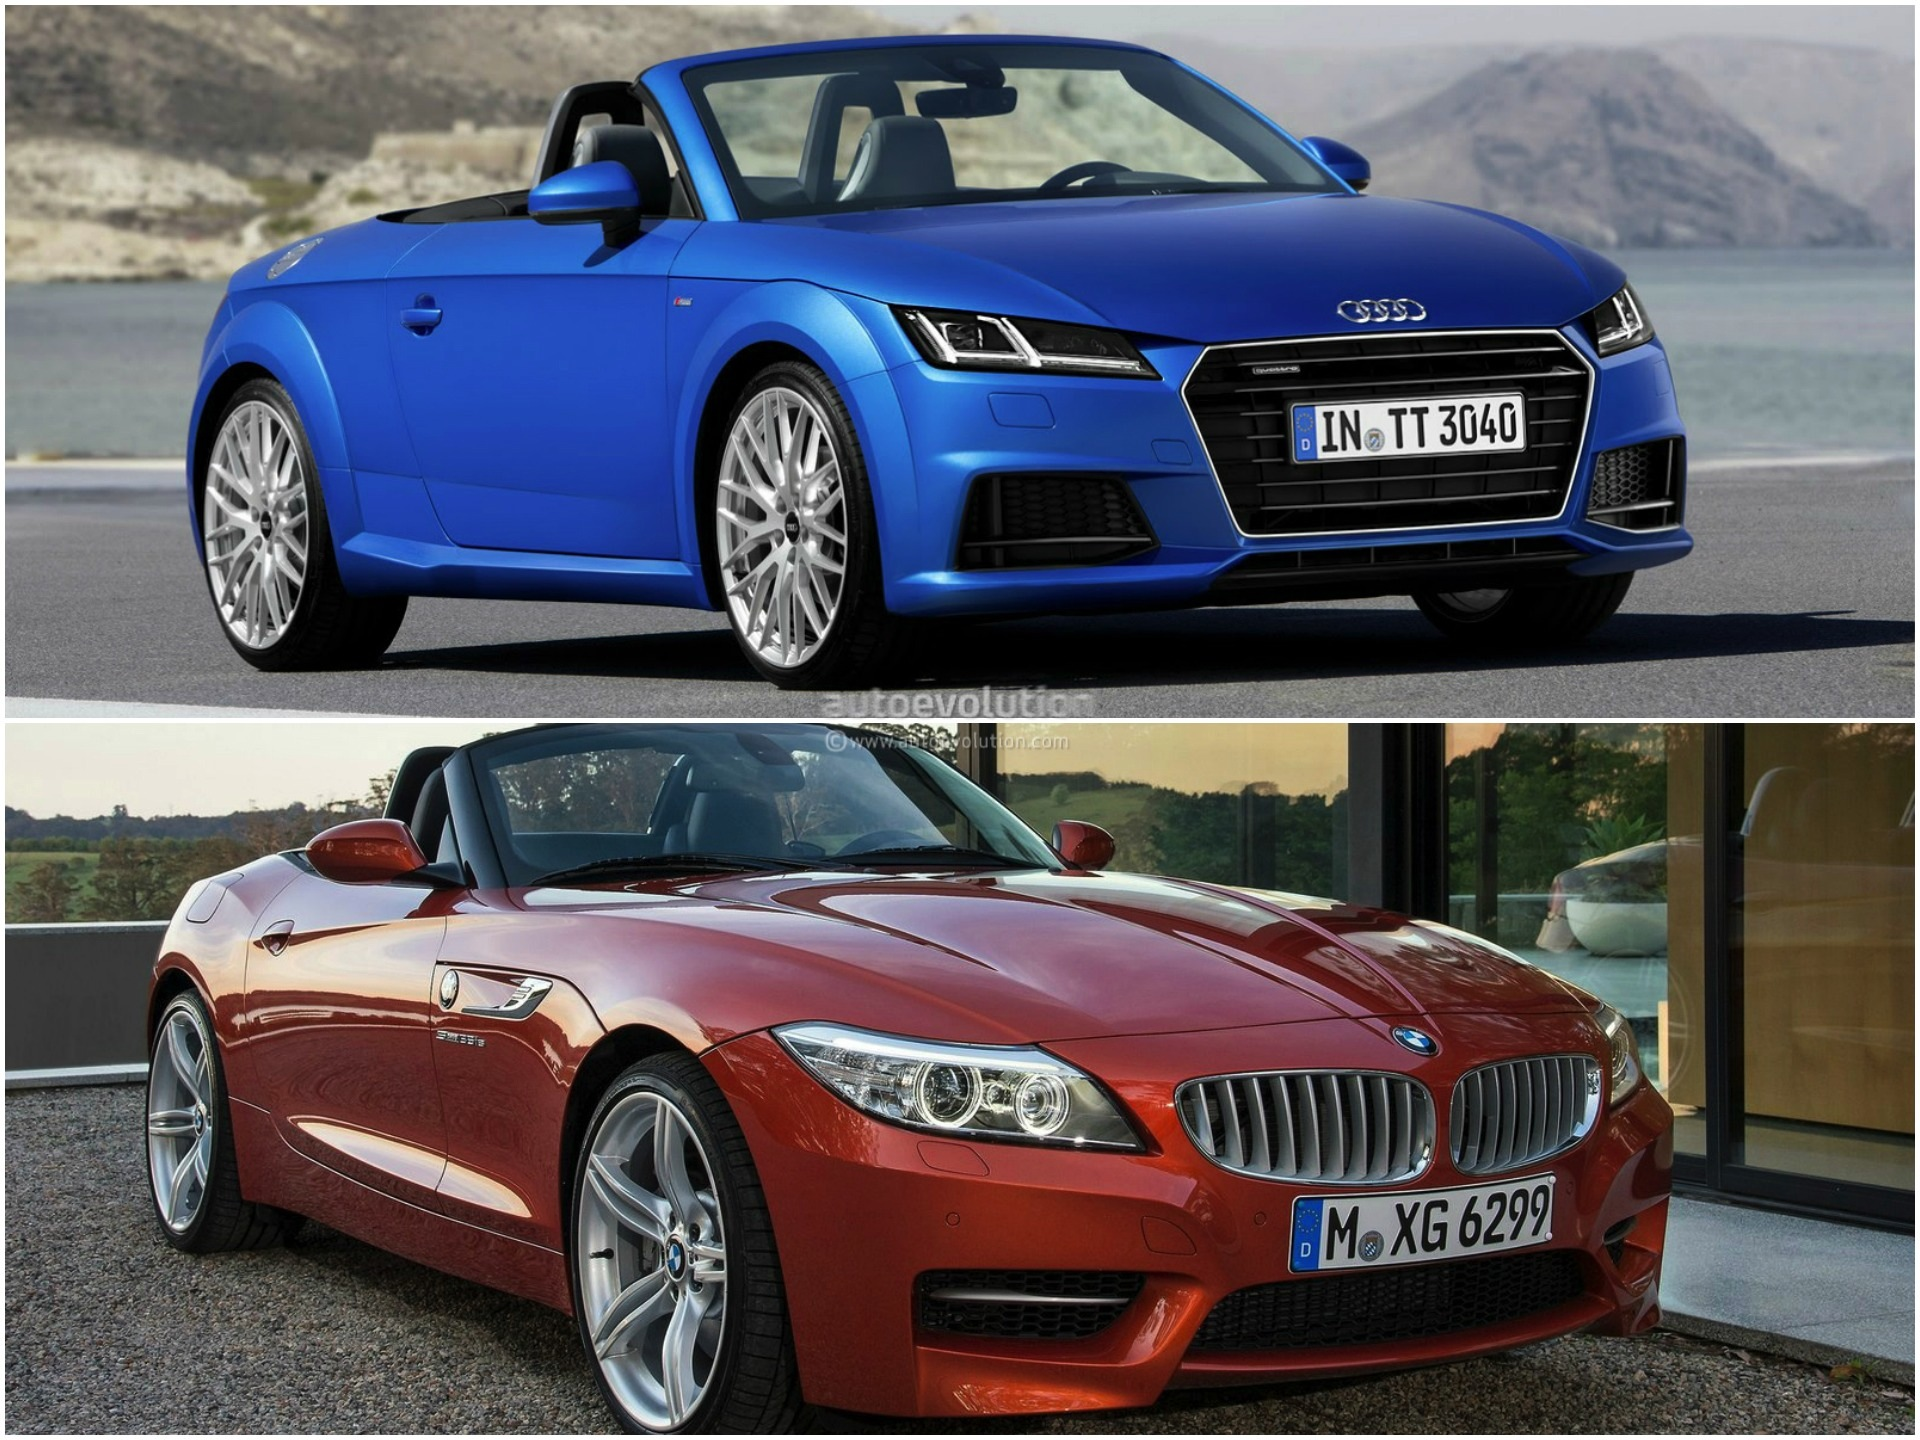 2015 audi tt roadster vs 2014 bmw z4 roadster comparison autoevolution. Black Bedroom Furniture Sets. Home Design Ideas